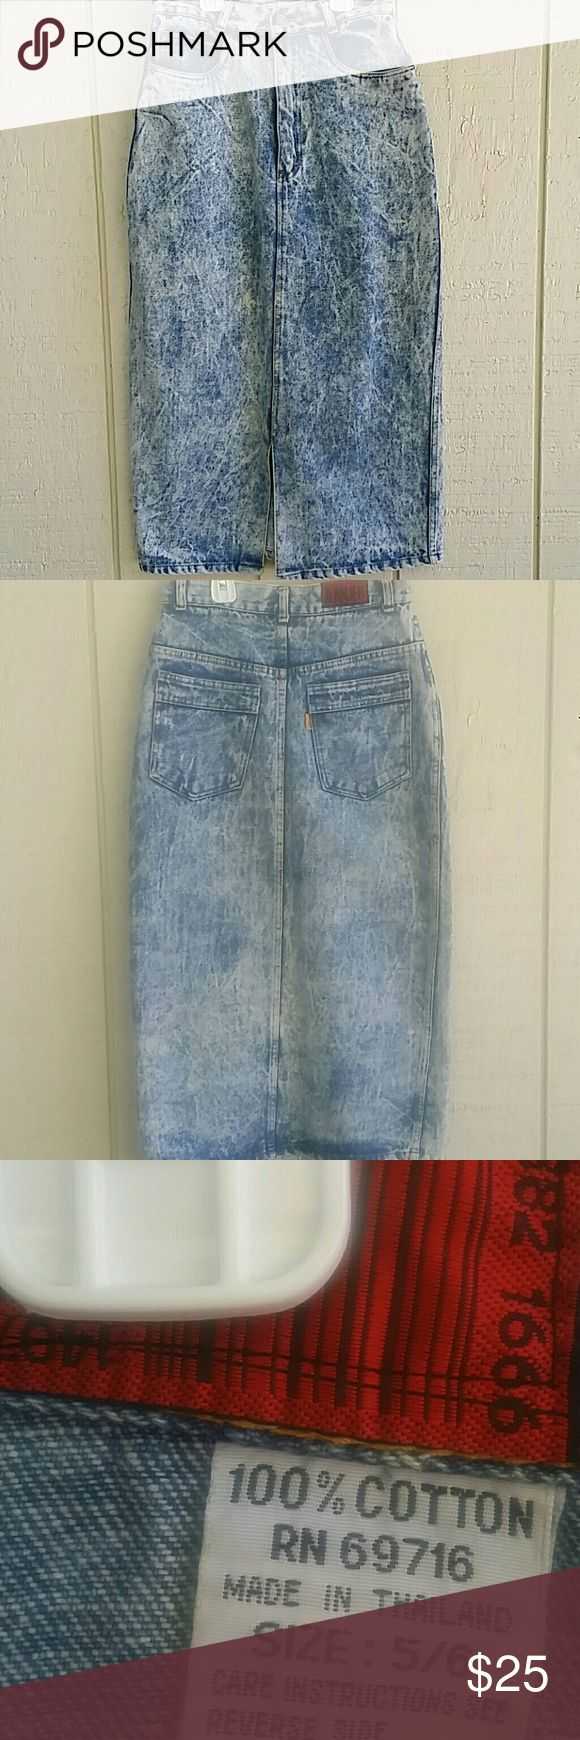 Vintage high waisted jeans skirt Very cute !! Vintage high waisted jeans skirt size 5/6 has a slit on the bottom in the front granjer Skirts Midi